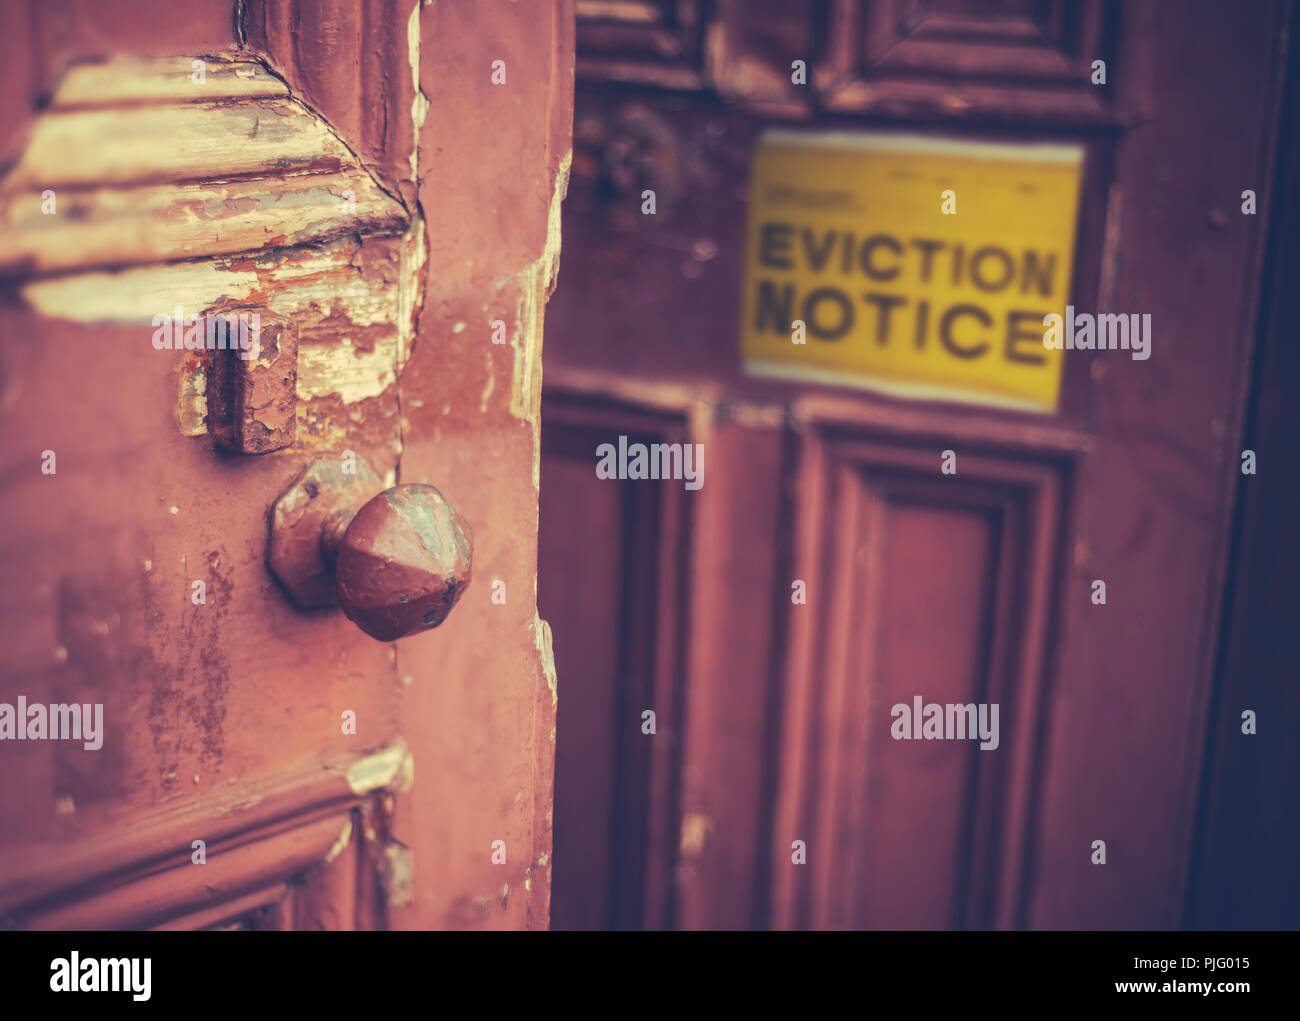 Grungy Old Door With A Yellow Eviction Notice - Stock Image